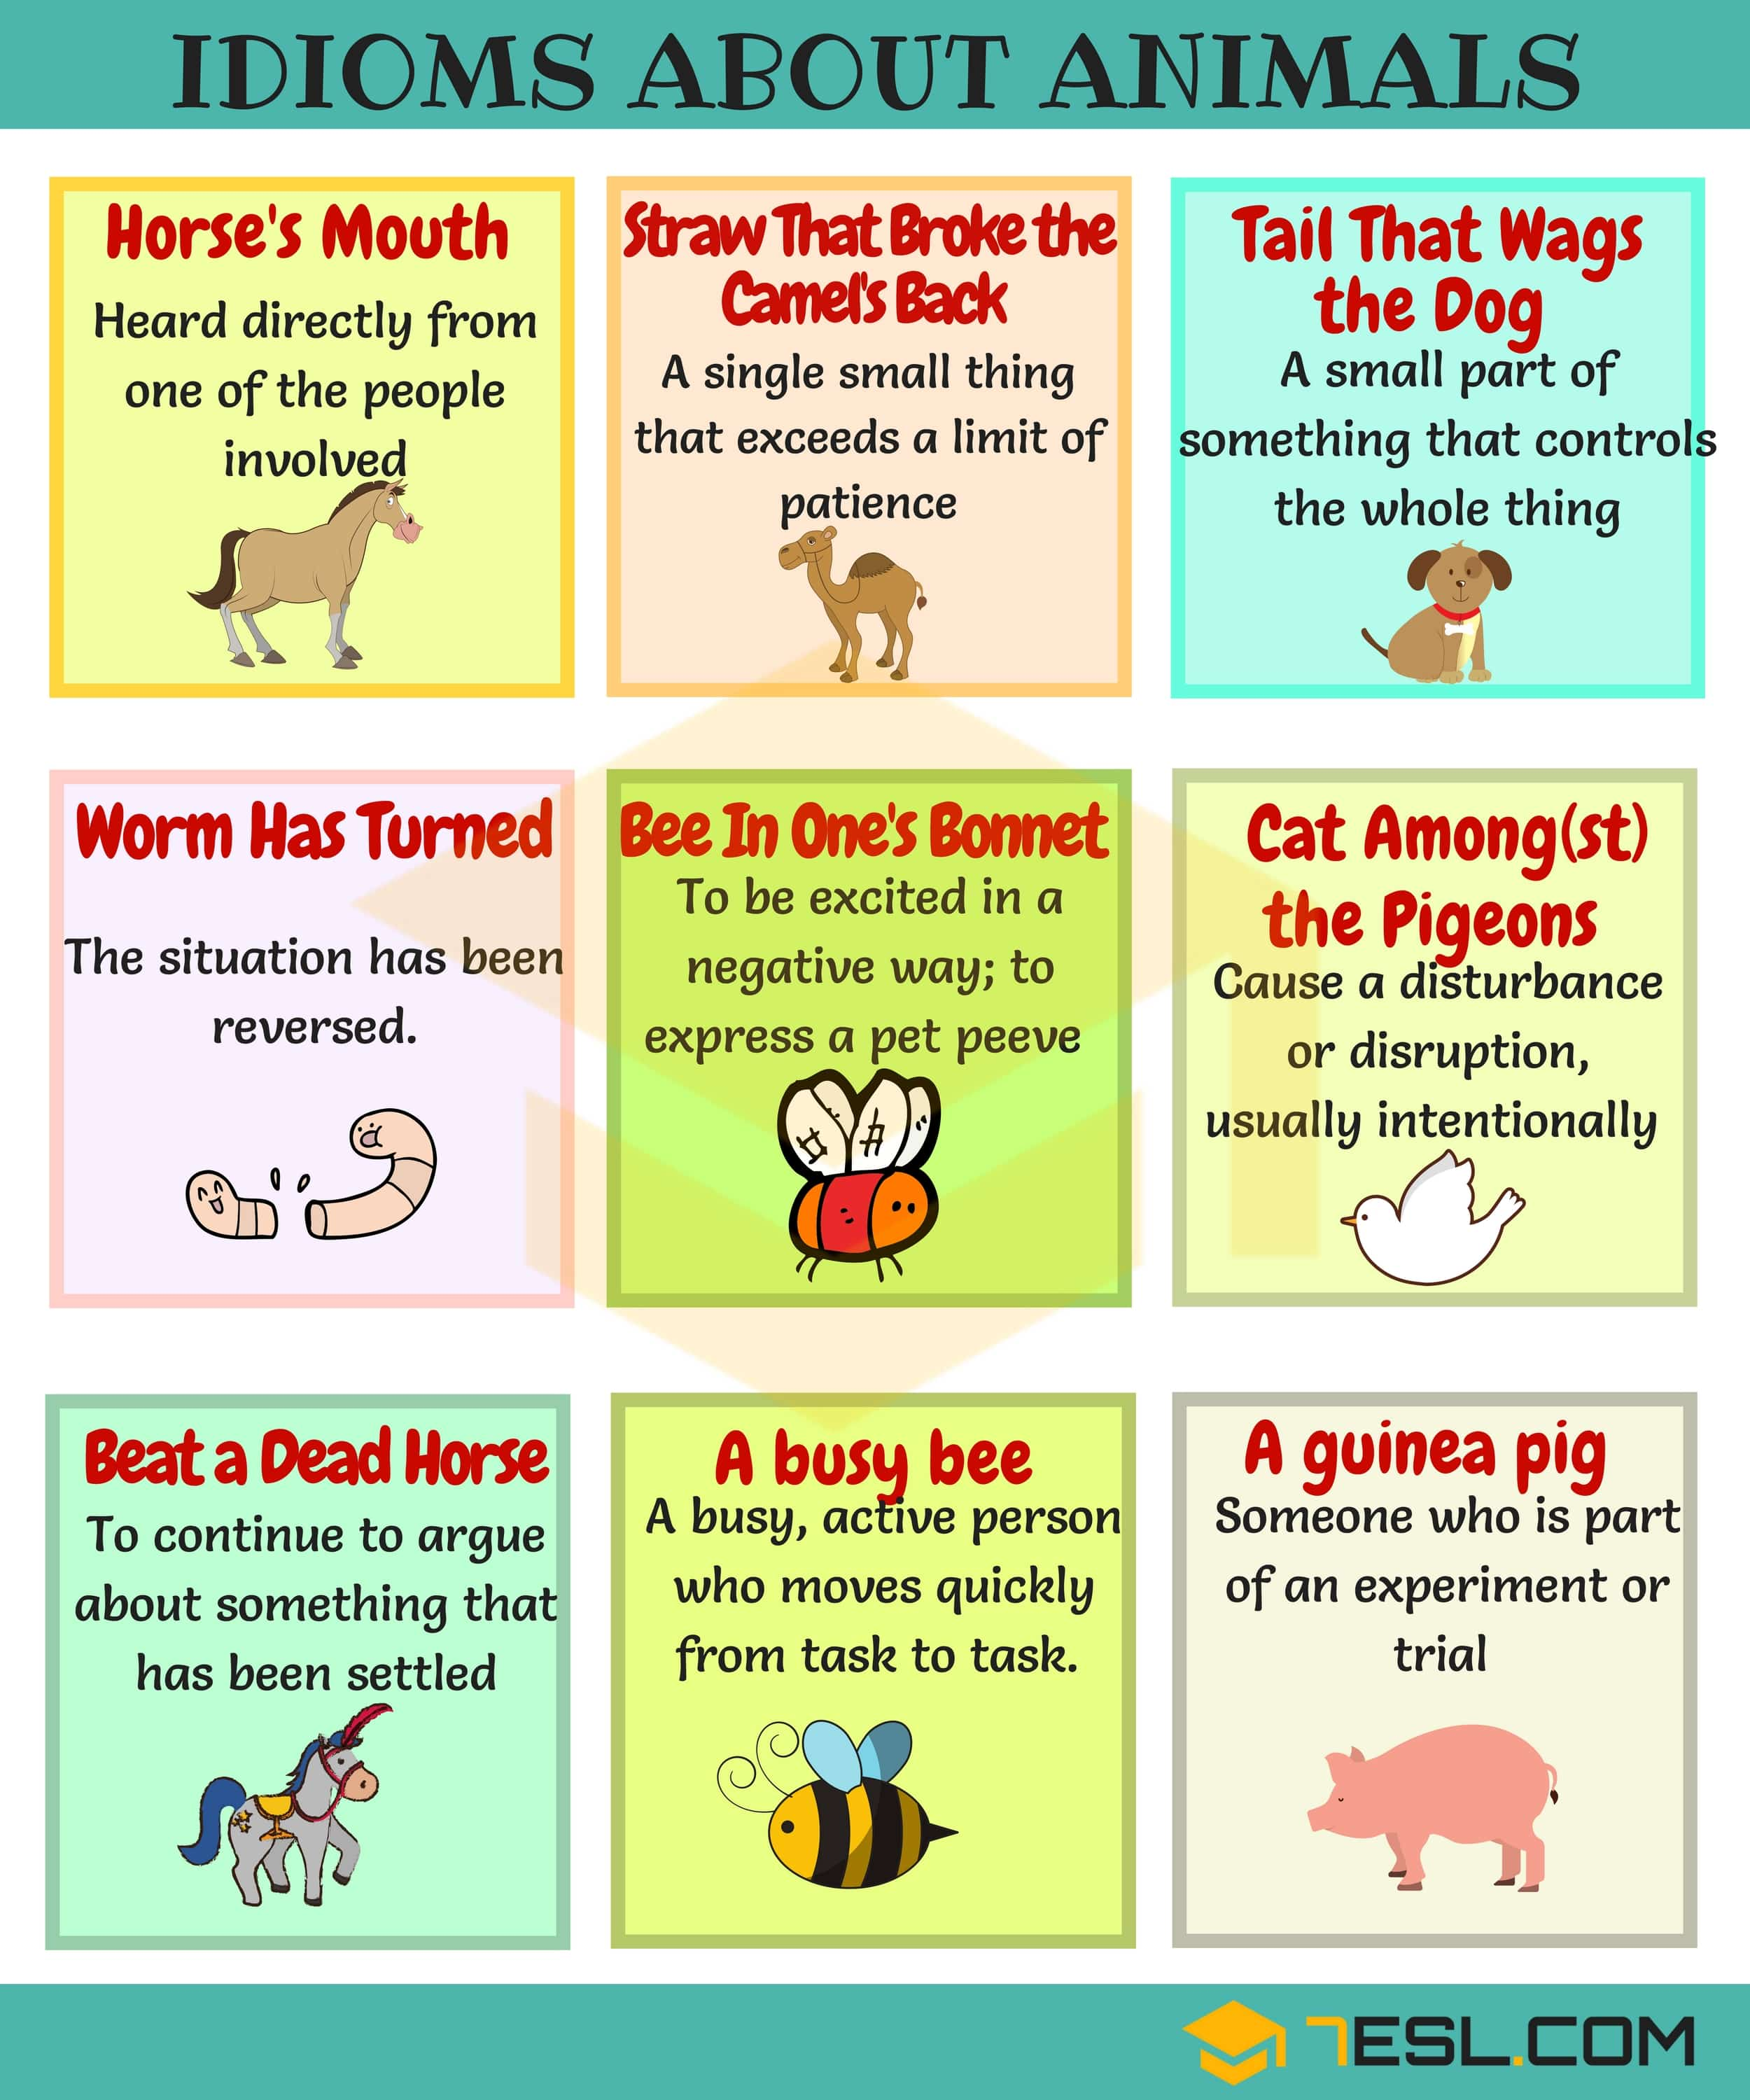 85 Amazing Animal Idioms In English A To E 7 E S L